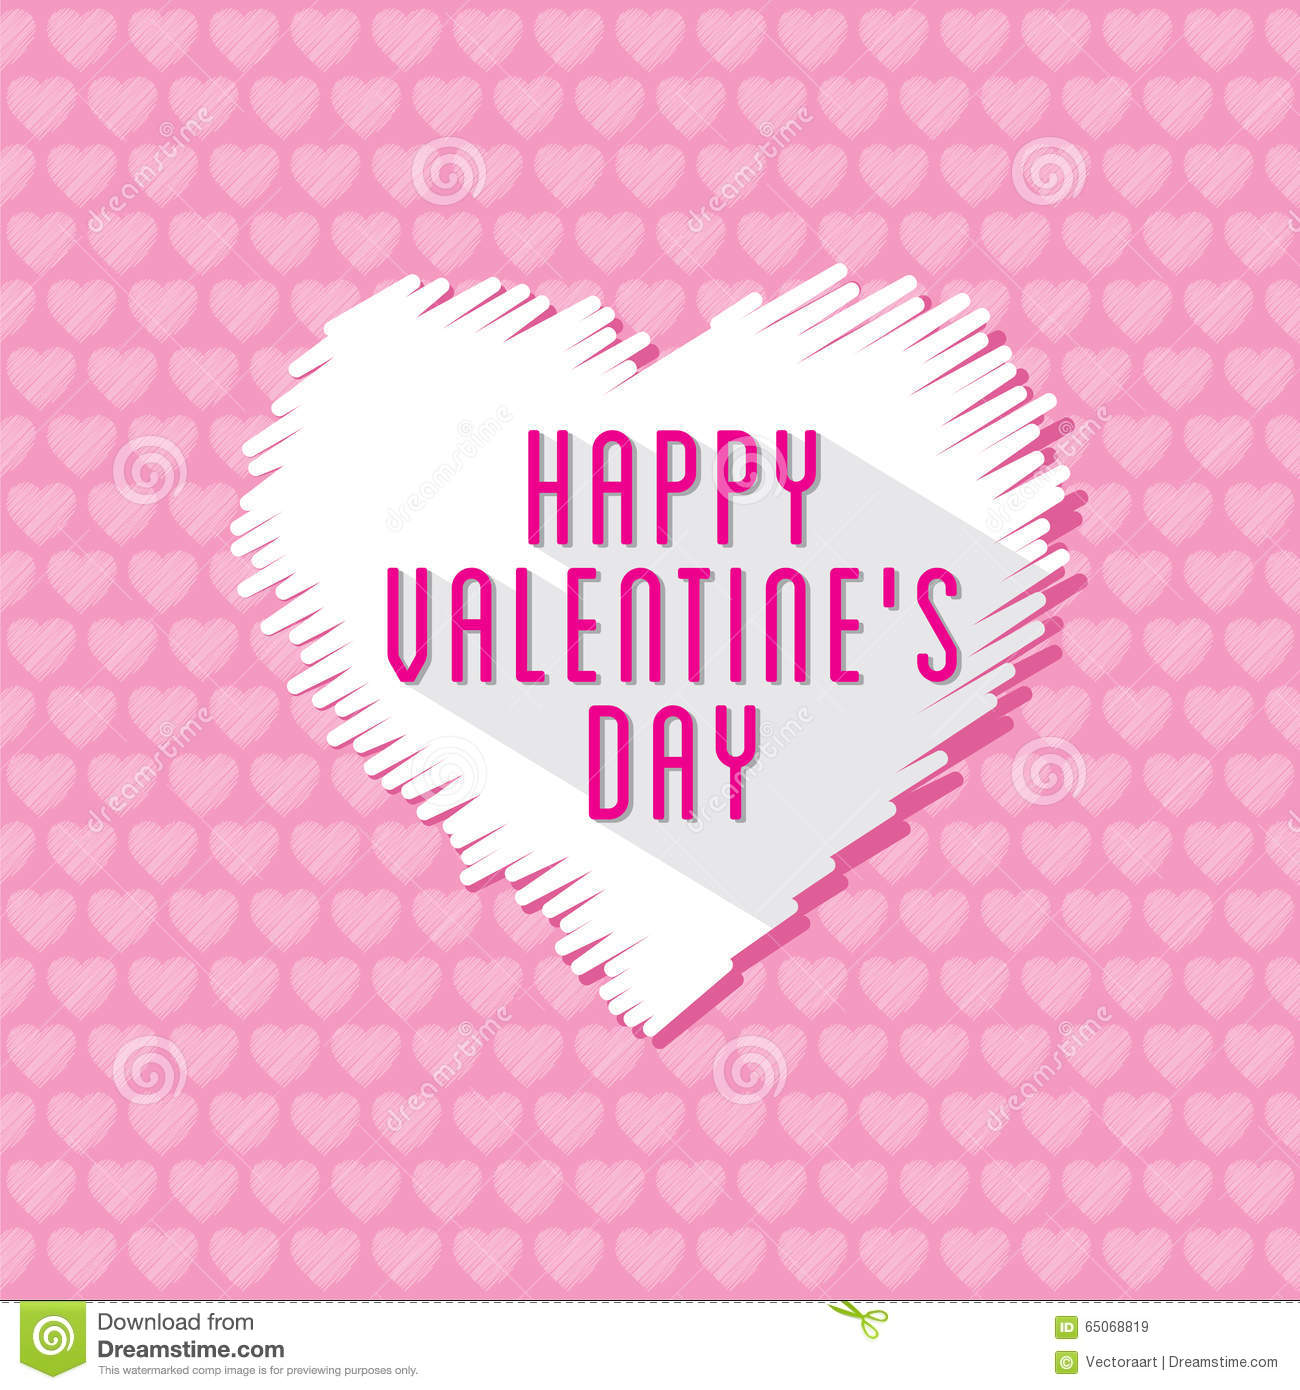 Happy Valentines Day Greeting Card Design Stock Vector